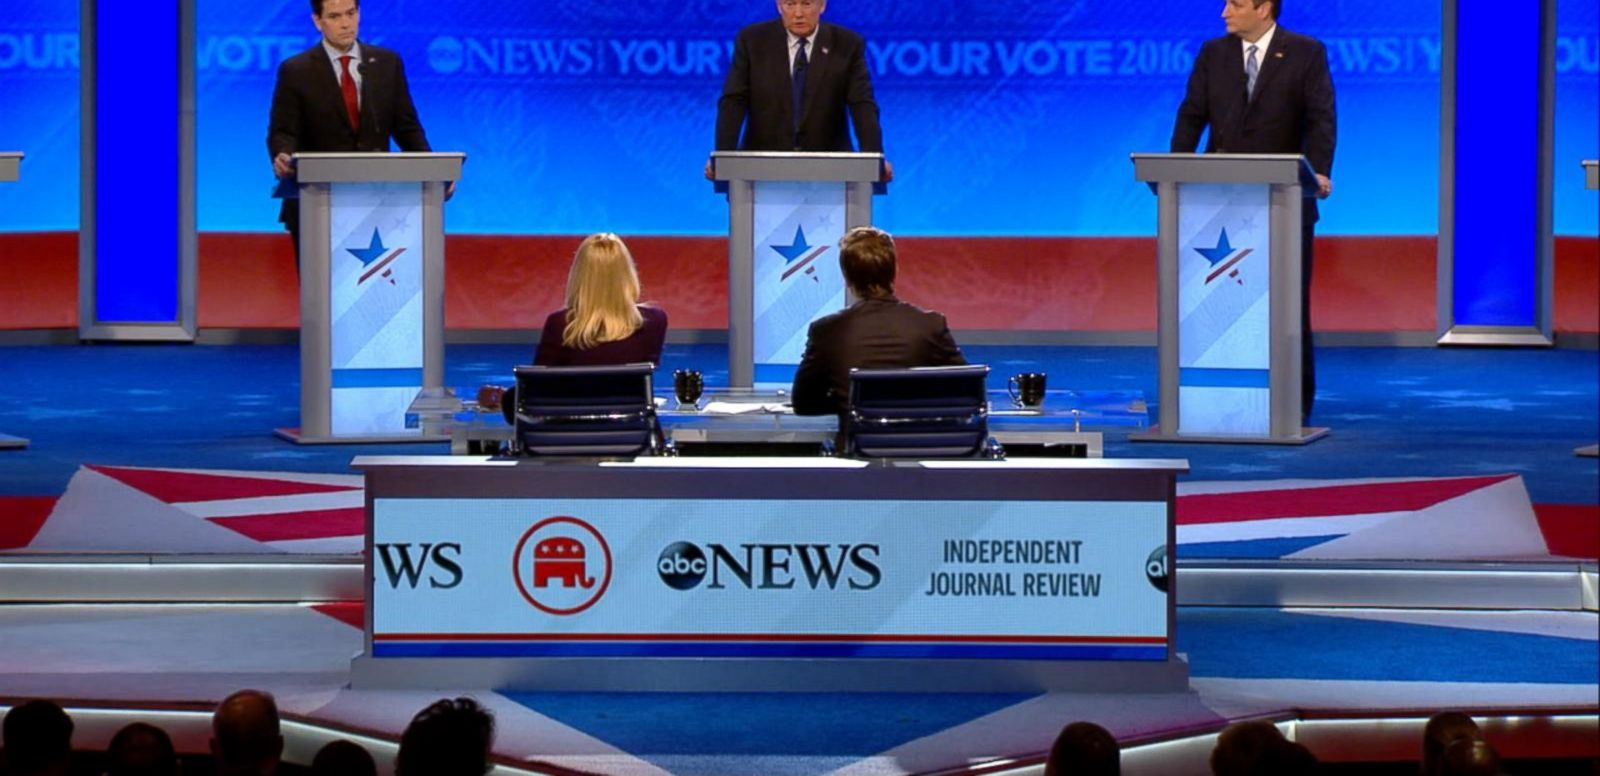 VIDEO: 02/06/16: Republican Presidential Debate